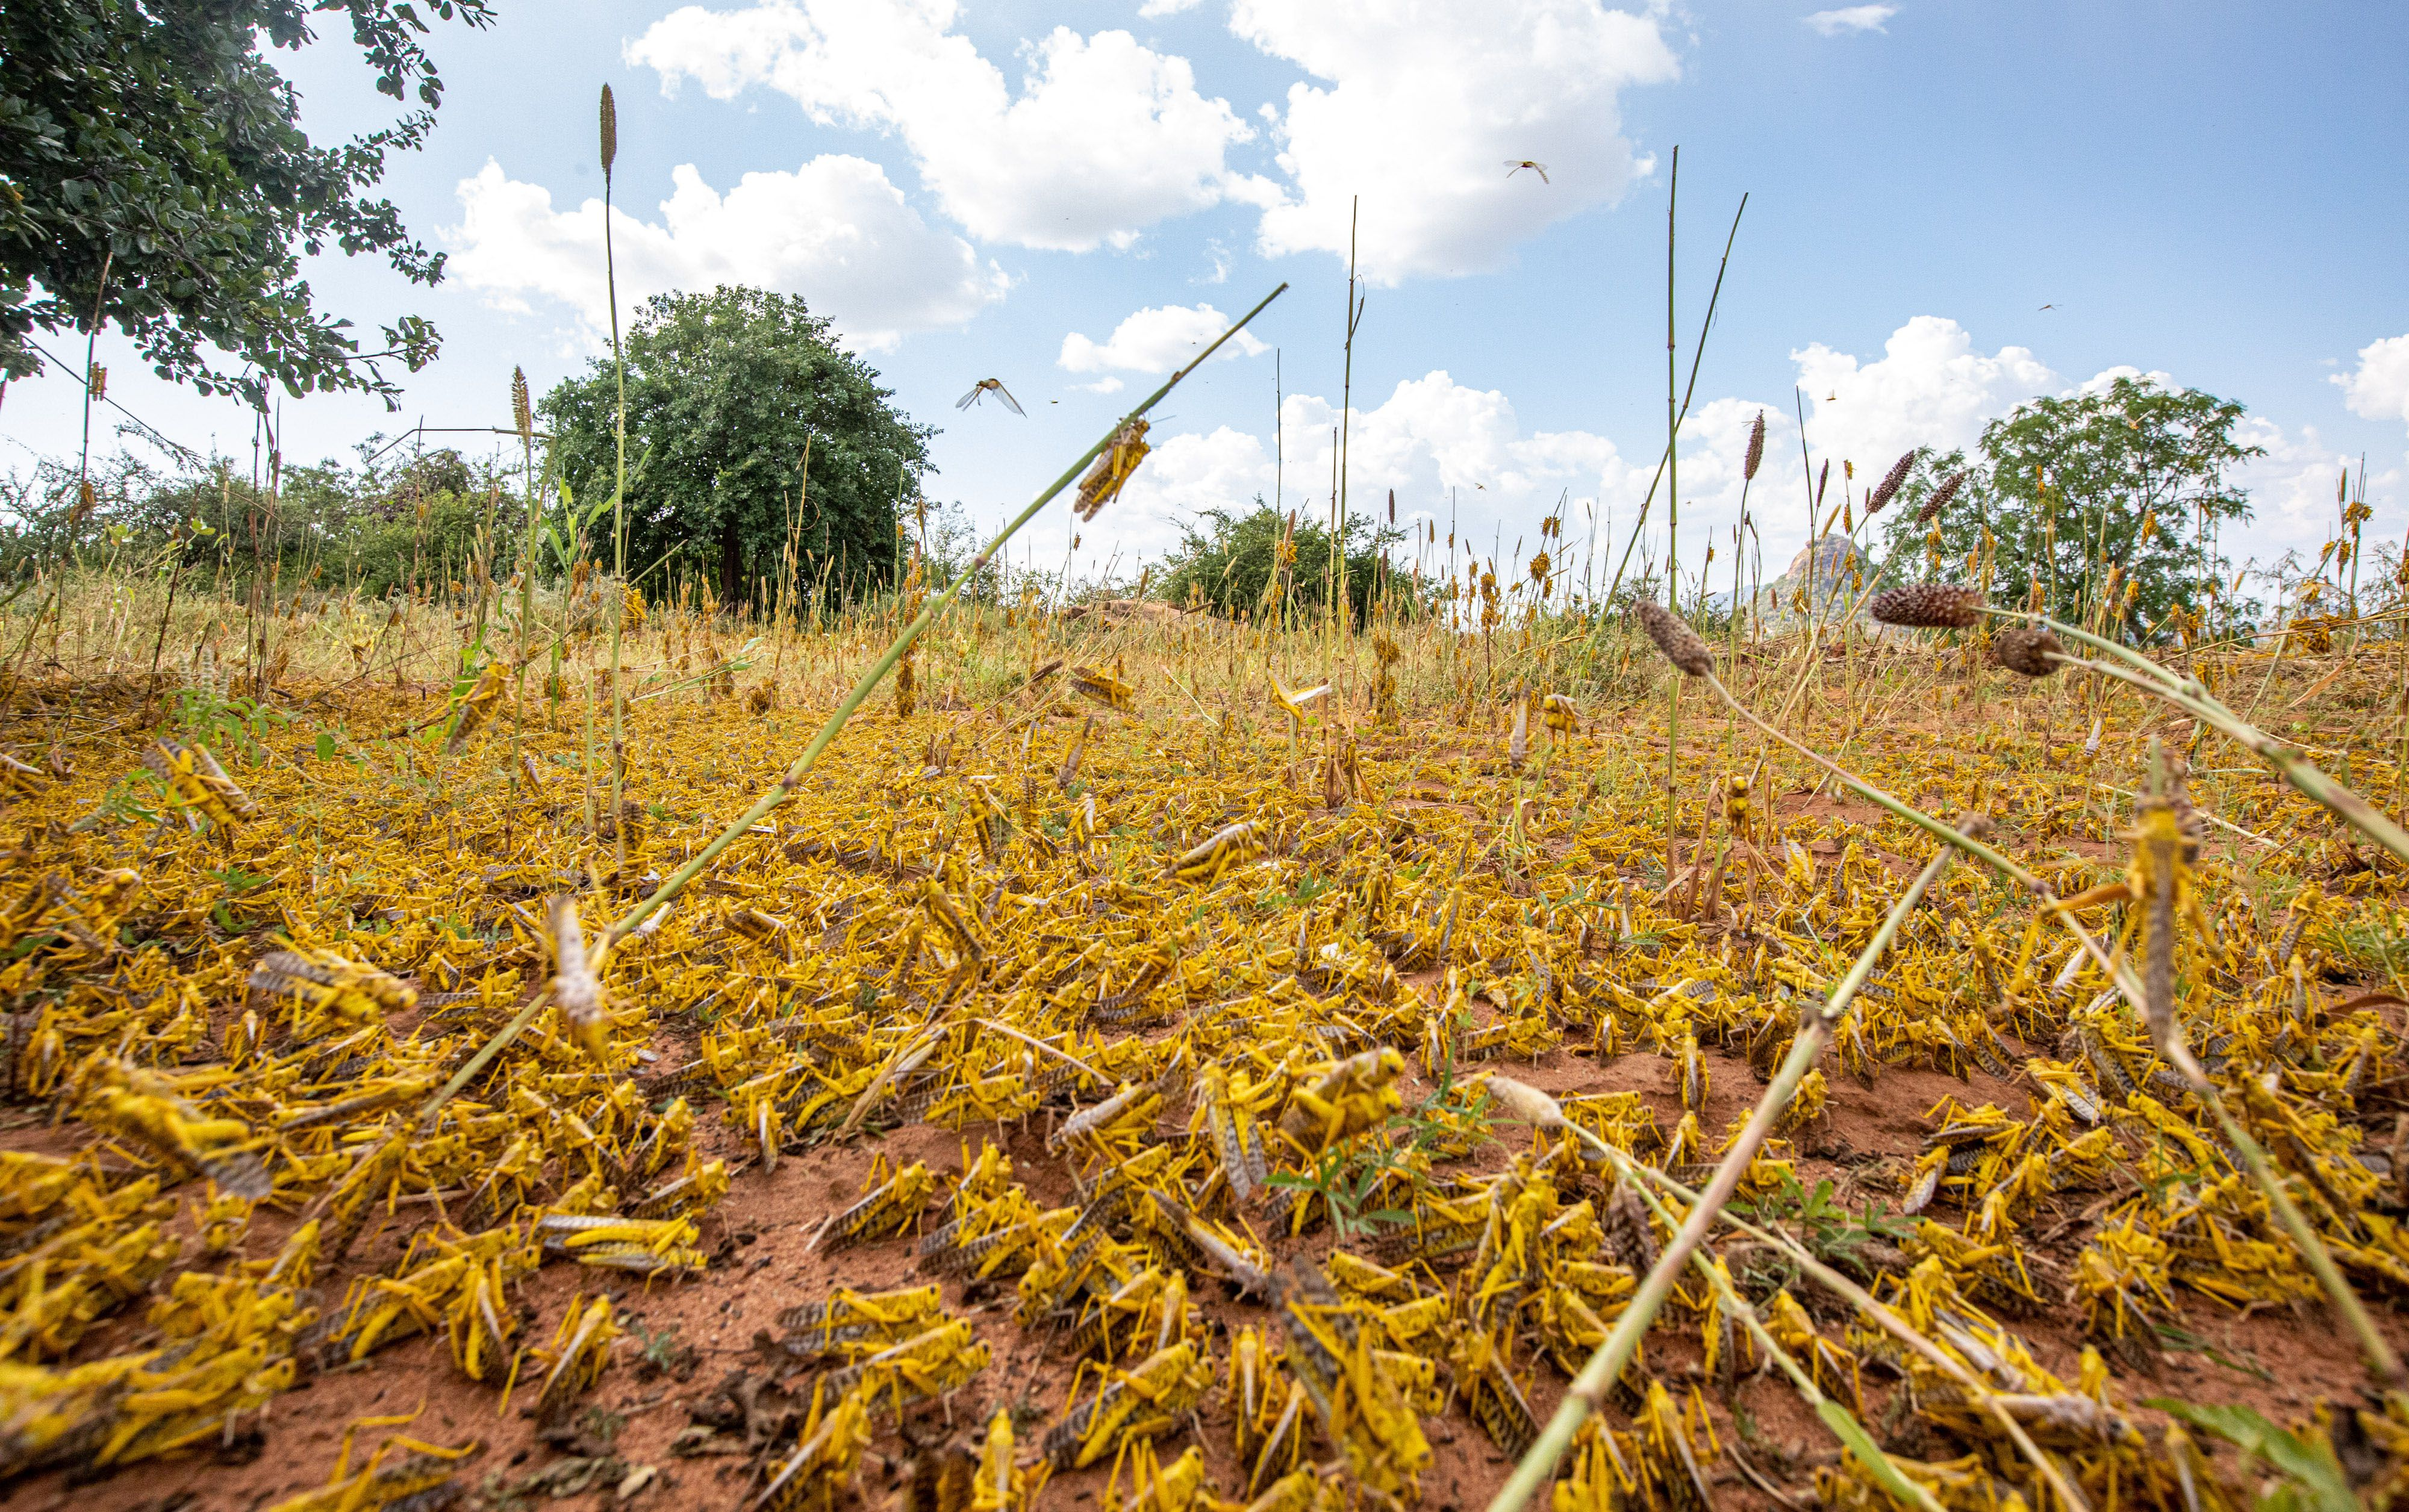 Swarms of locusts in East Africa put millions at risk of starvation